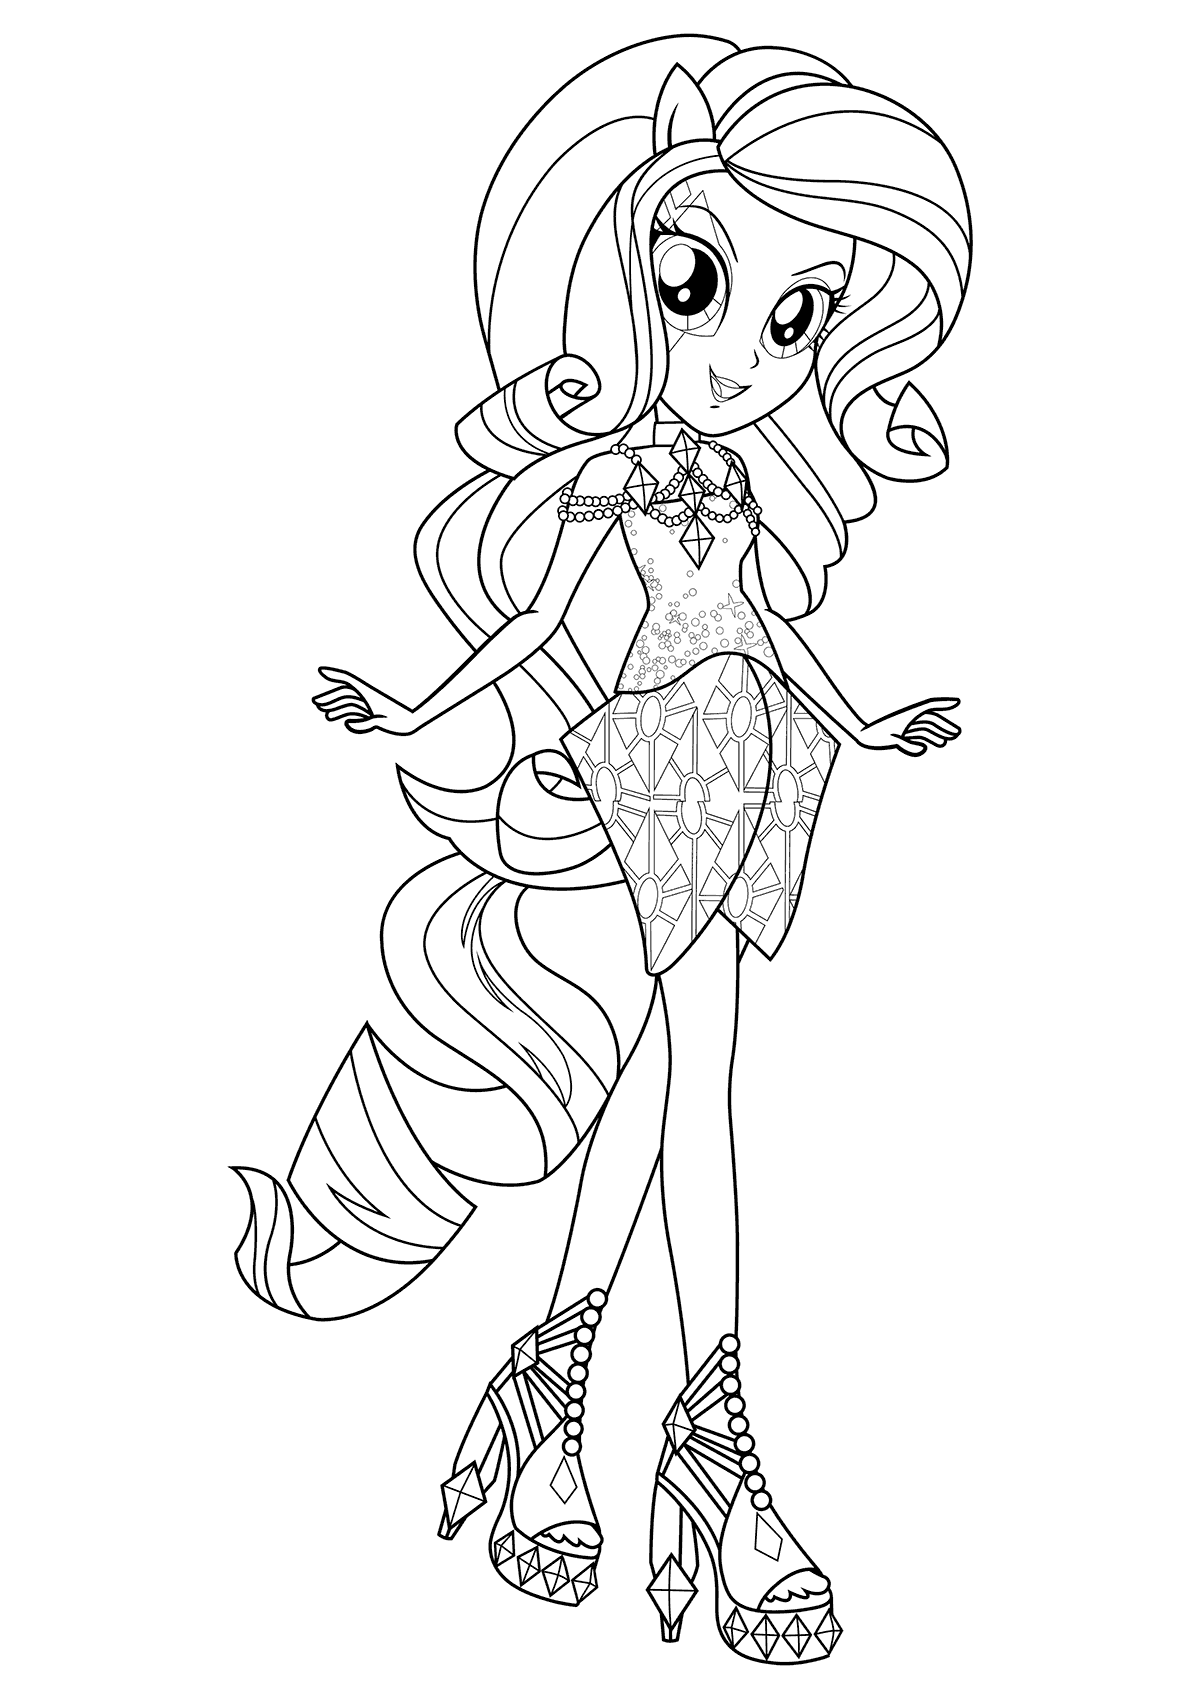 pony coloring pages for girls princess alicorn coloring page free printable coloring pages girls coloring pages for pony